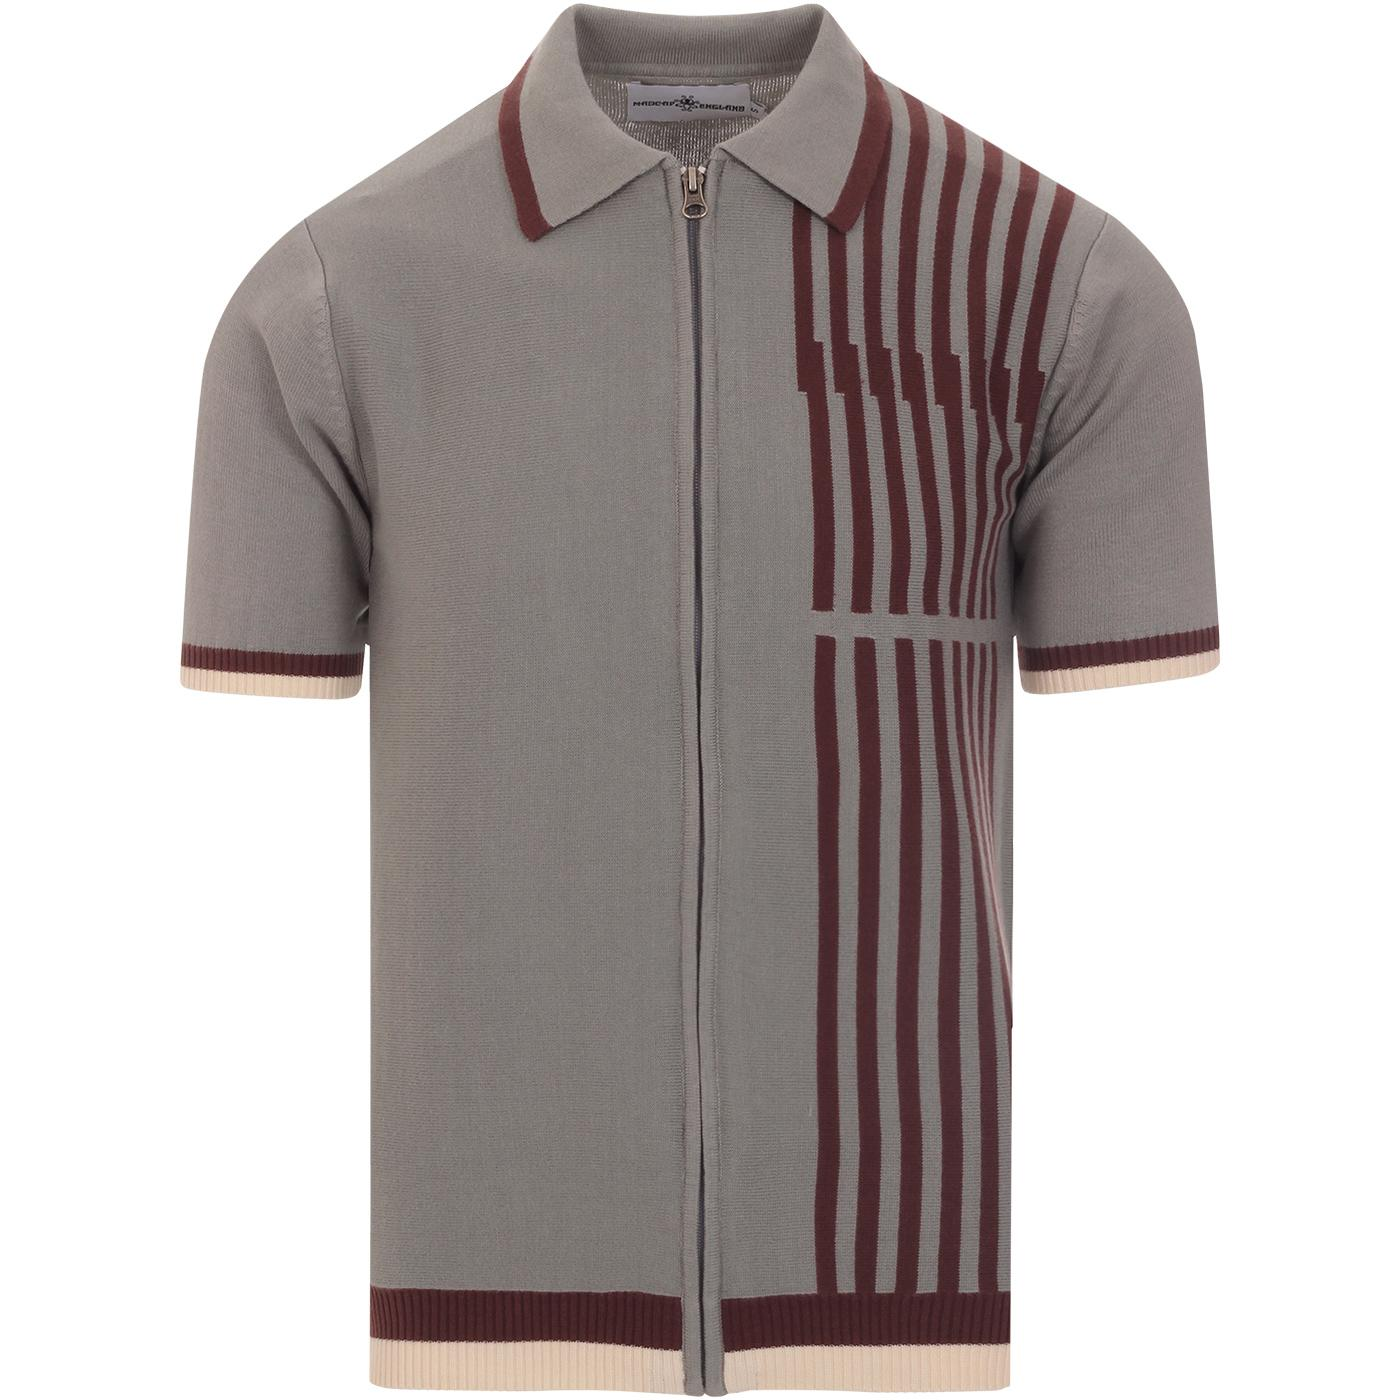 madcap england mens knitted side stripes zip through polo moon mist grey